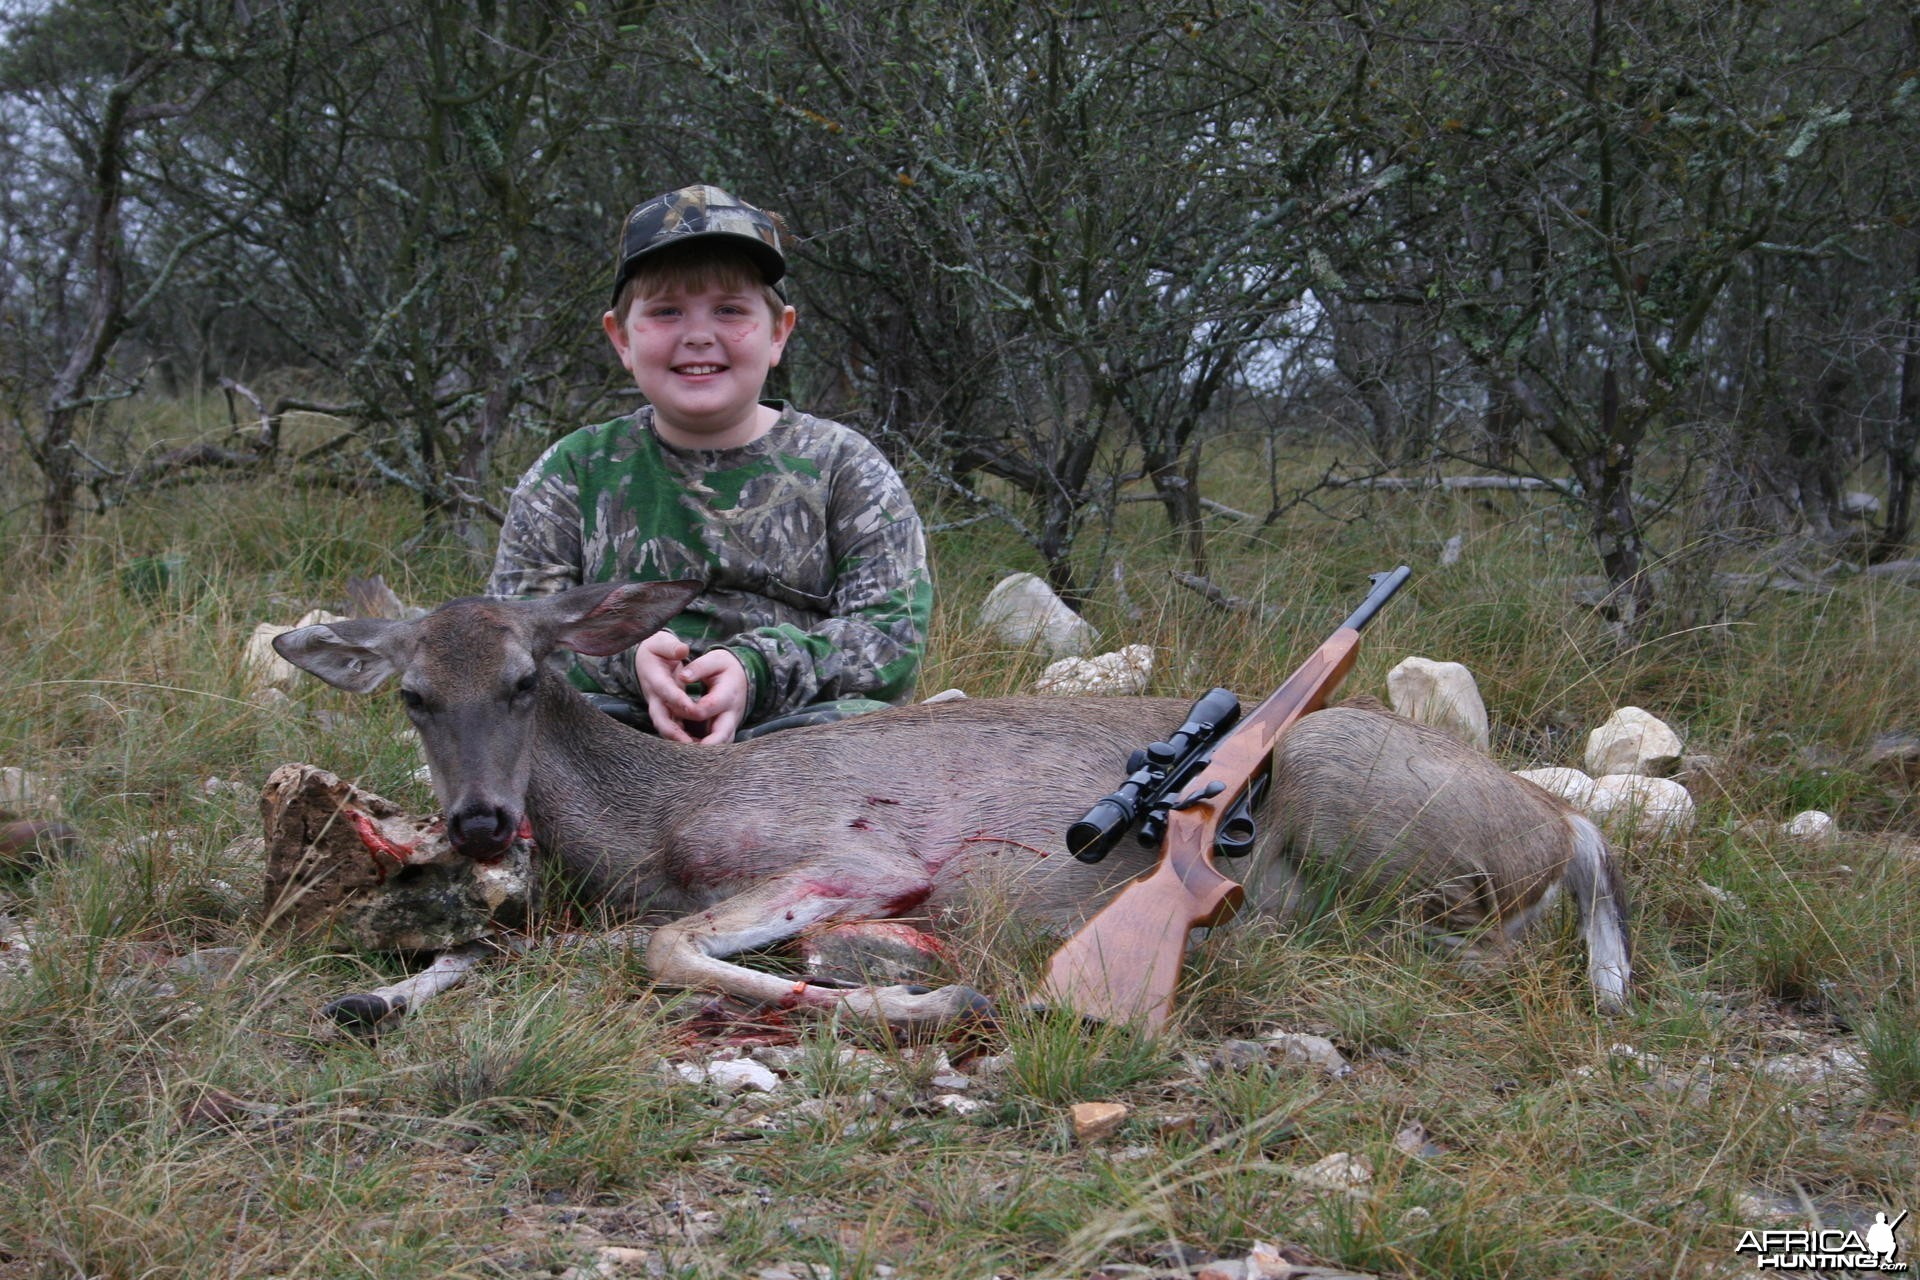 Kids and Hunting